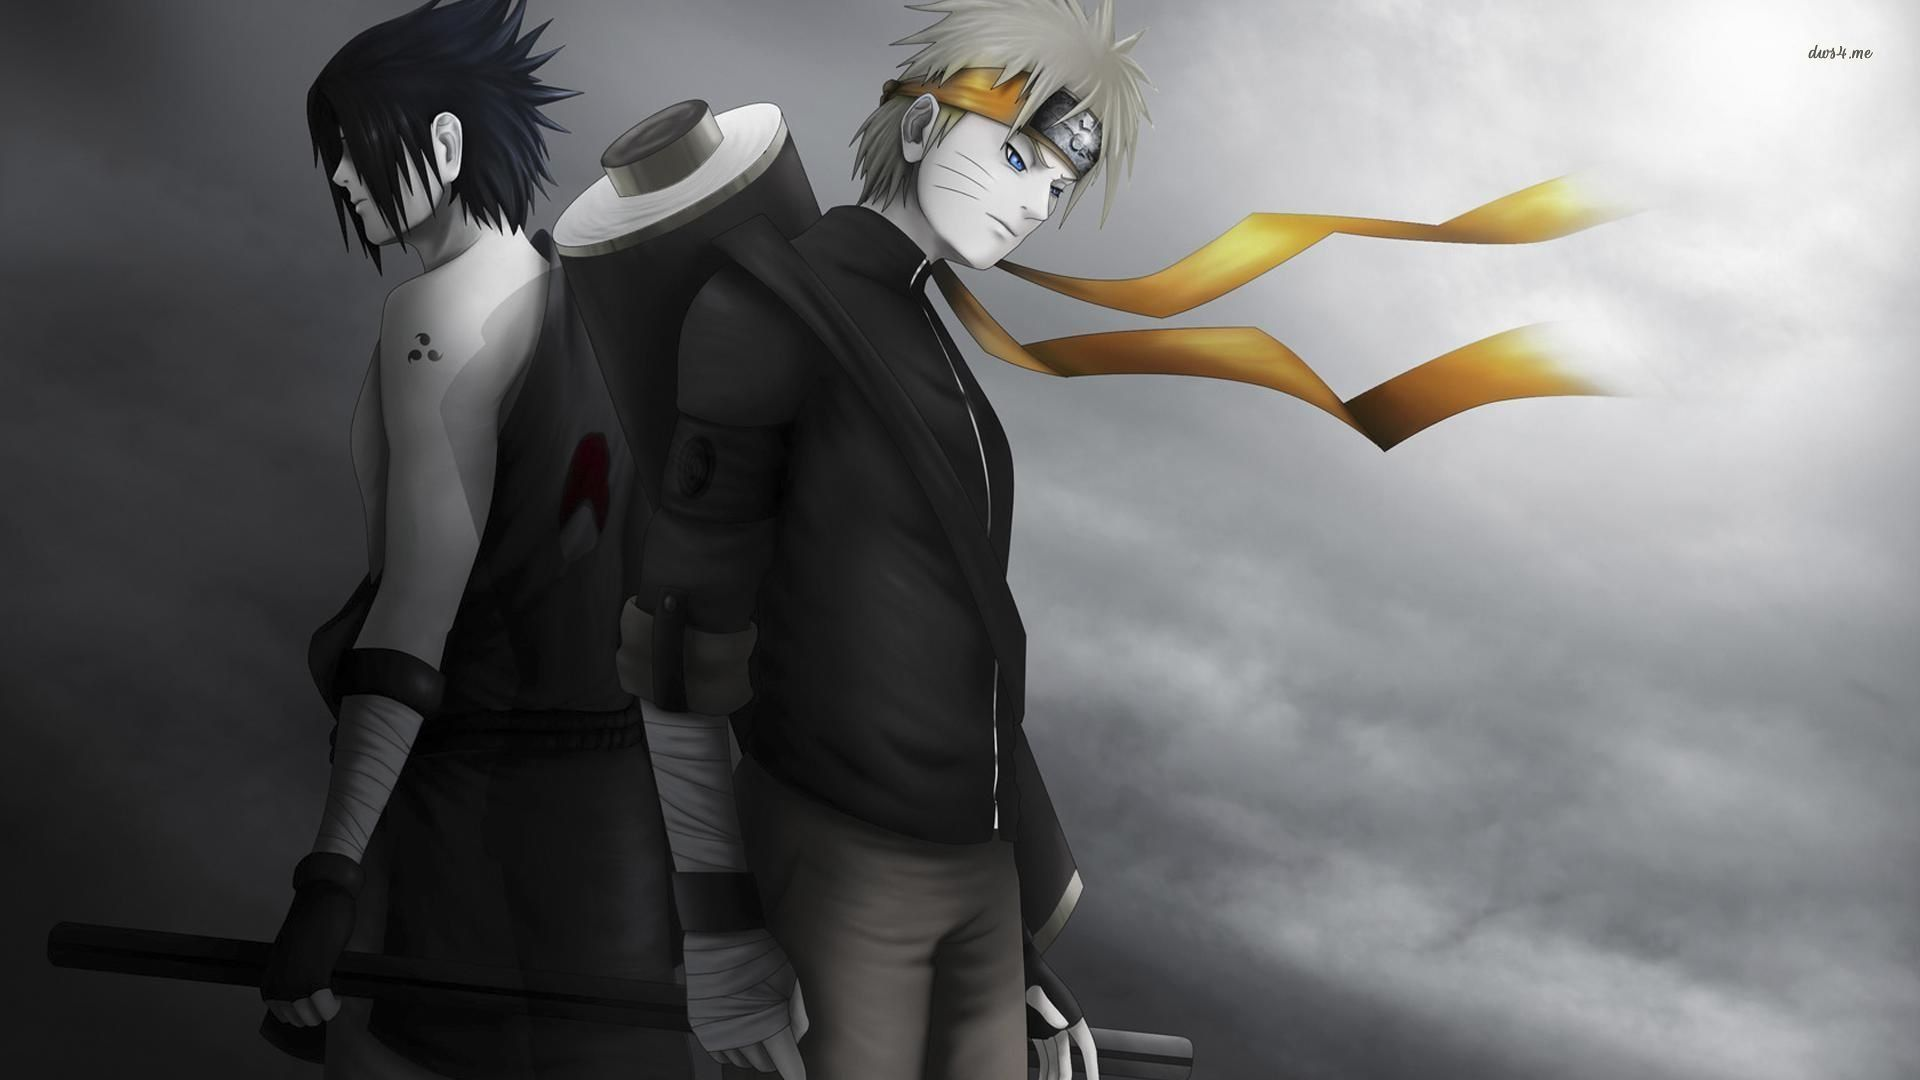 Uzumaki Clan Images Naruto Uzumaki Hd Wallpaper And Background Walle Super Heroe